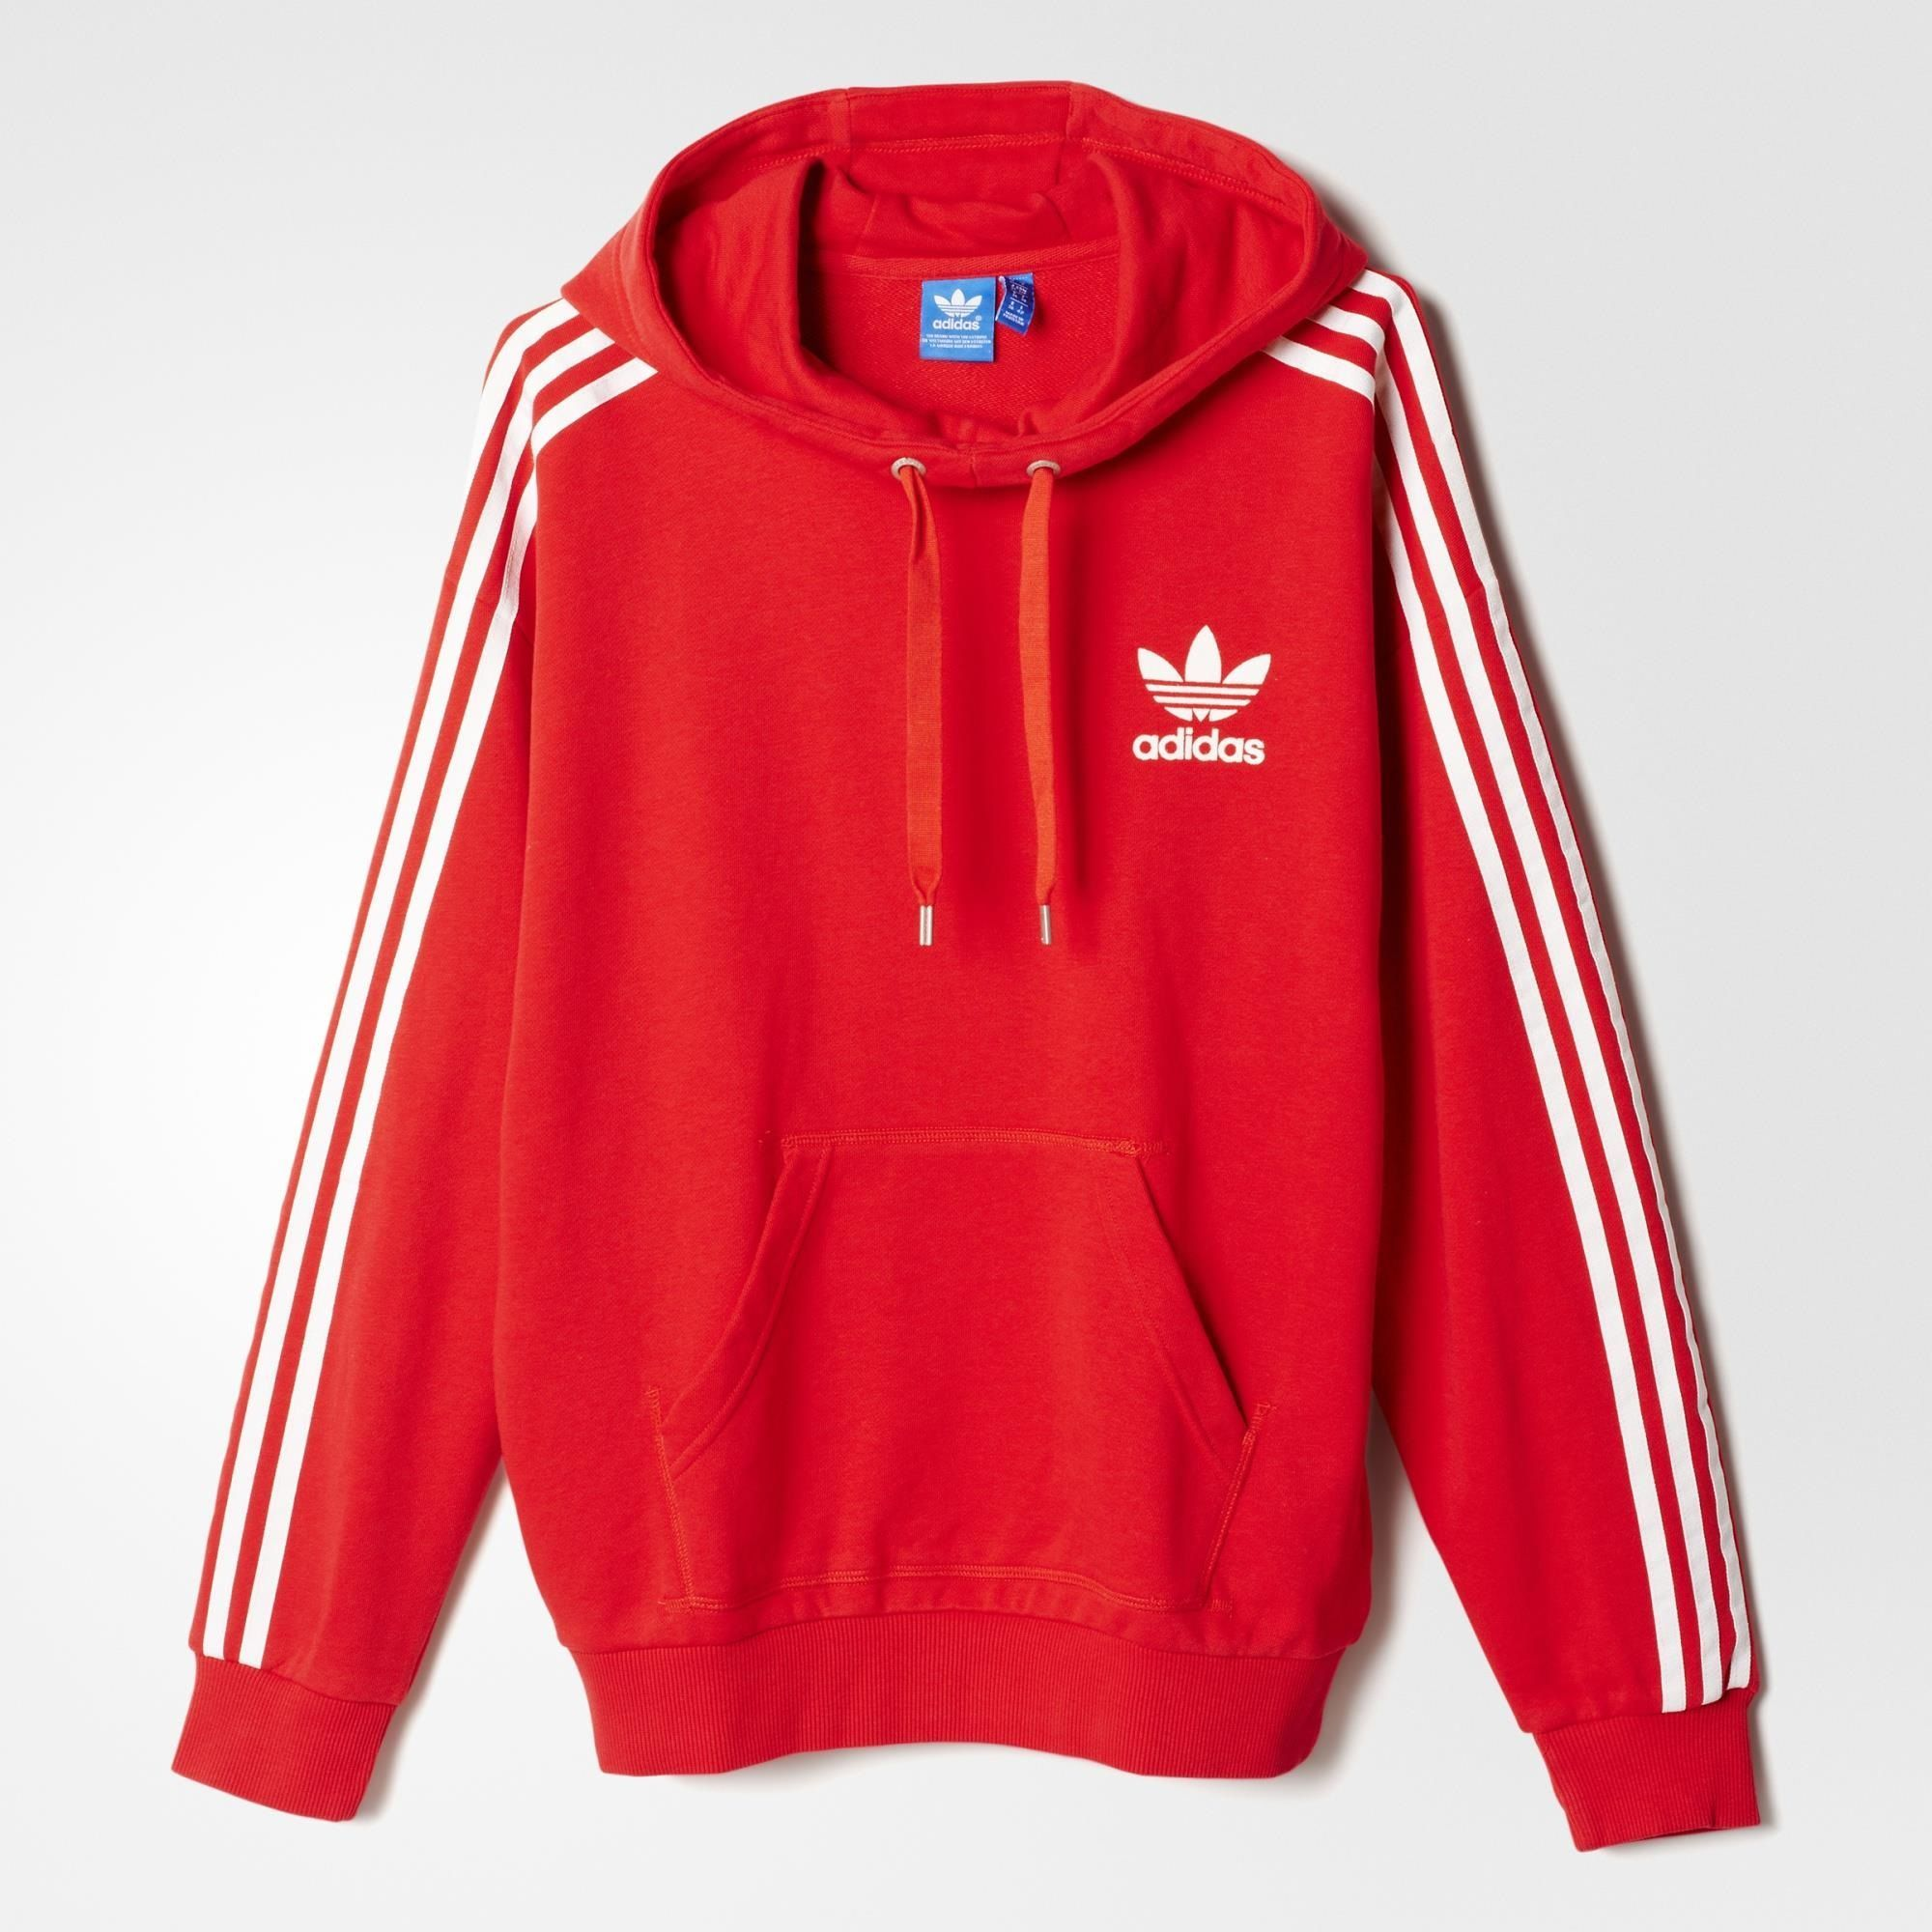 adidas 3-Stripes Hoodie - Tomato | adidas US in 2019 ...